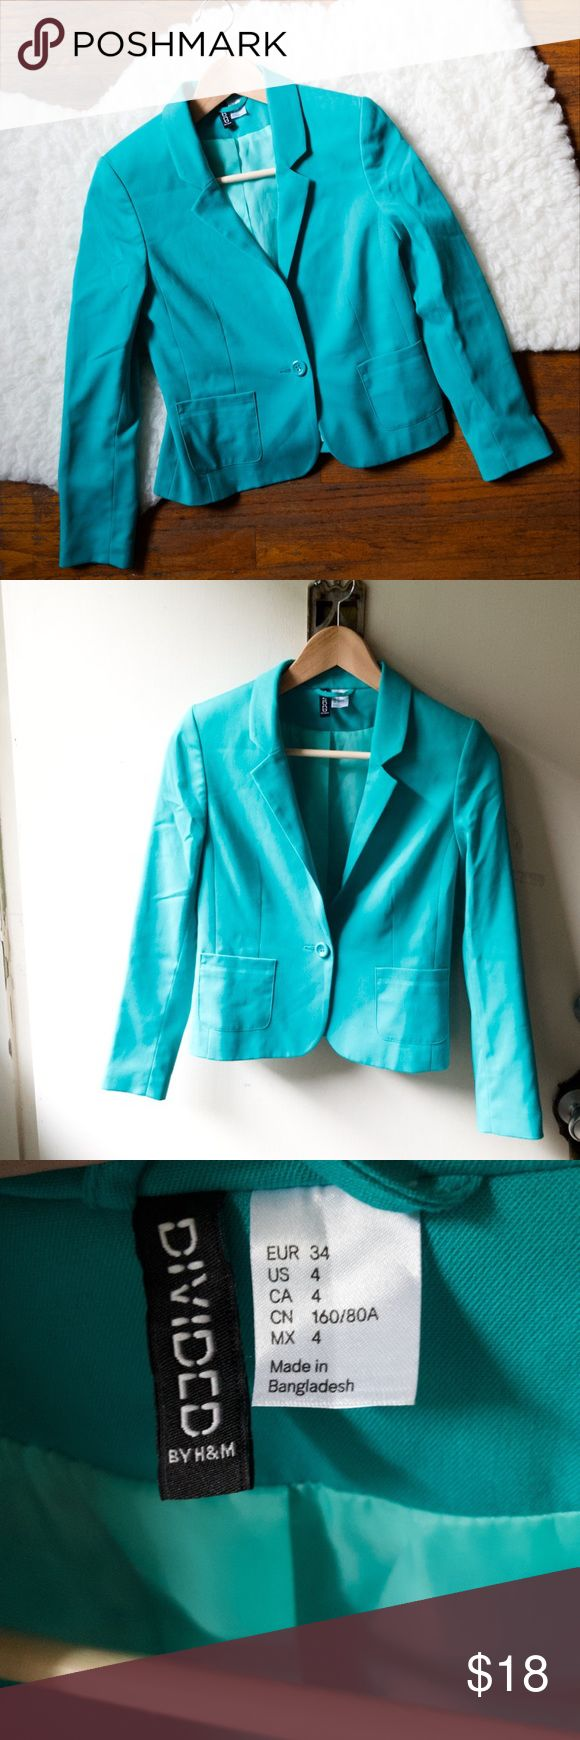 H&M size 4 turquoise blazer Excellent condition  Perfect for the office or for a casual look with jeans. No trades. Please look at pictures for details and measurements. divided by H&M Jackets & Coats Blazers